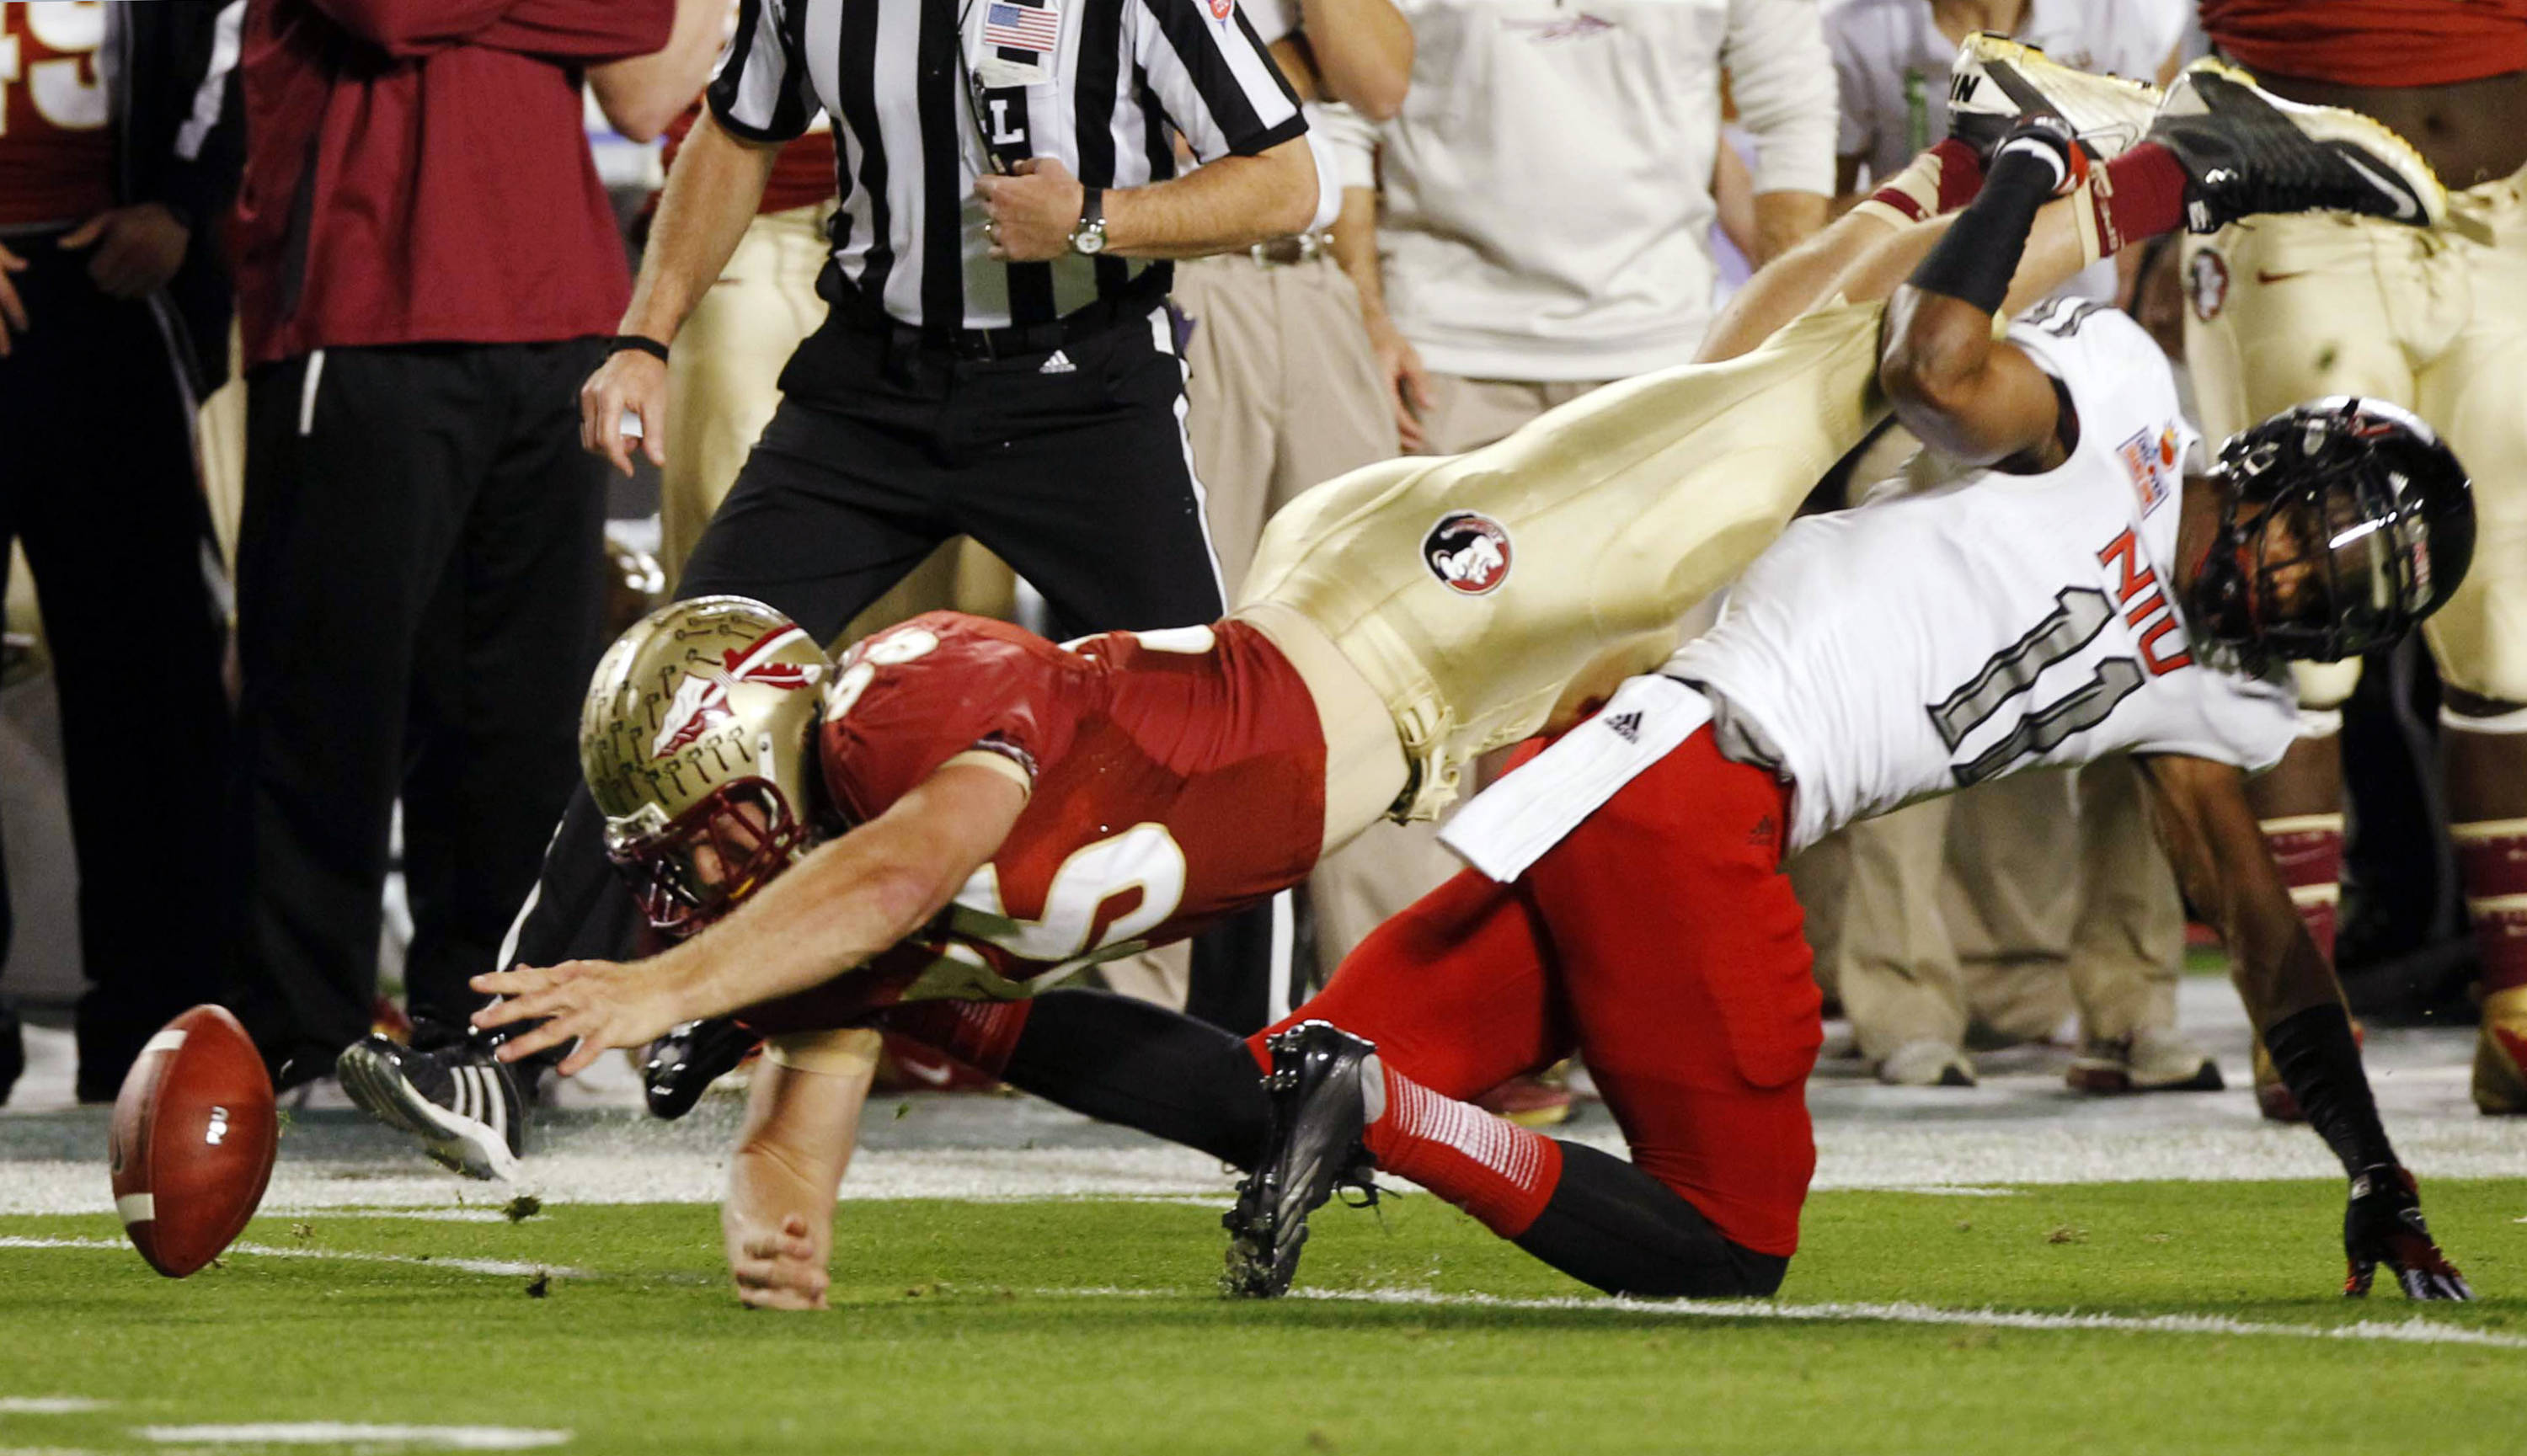 Florida State tight end Nick O'Leary (35) fumbles the ball as Northern Illinois cornerback Rashaan Melvin (11) defends during the first half of the Orange Bowl NCAA college football game, Tuesday, Jan. 1, 2013, in Miami. The ball was recovered by Northern Illinois. (AP Photo/Alan Diaz)